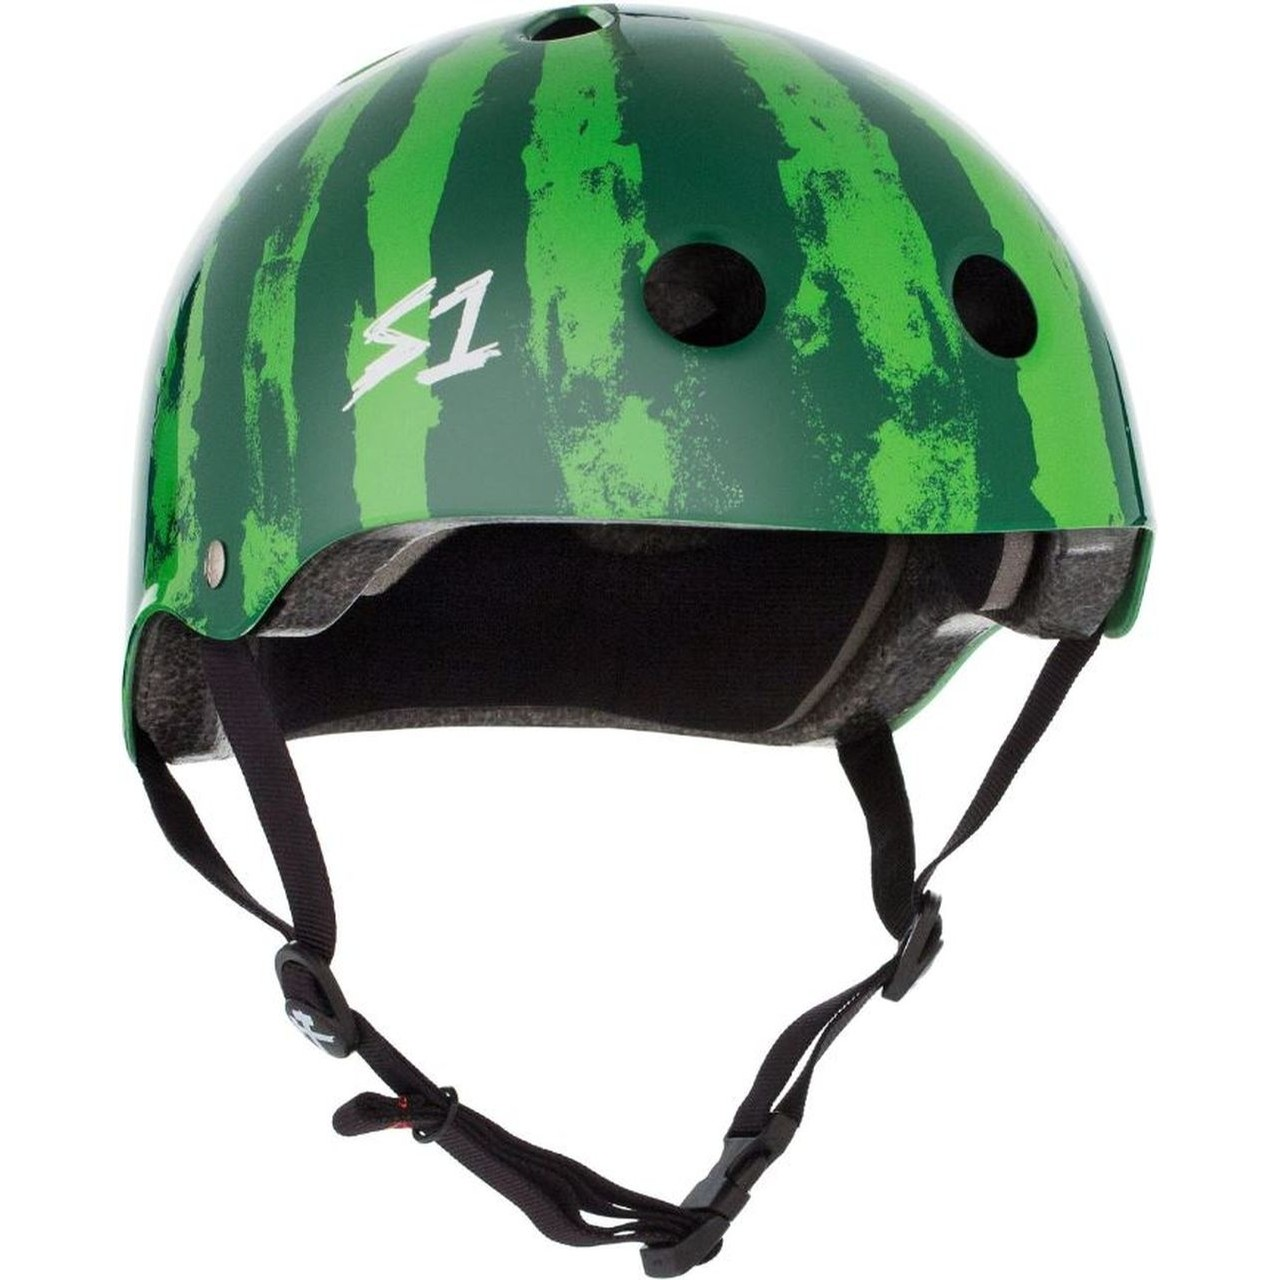 Lifer Helmet Black Matte/ Watermelon